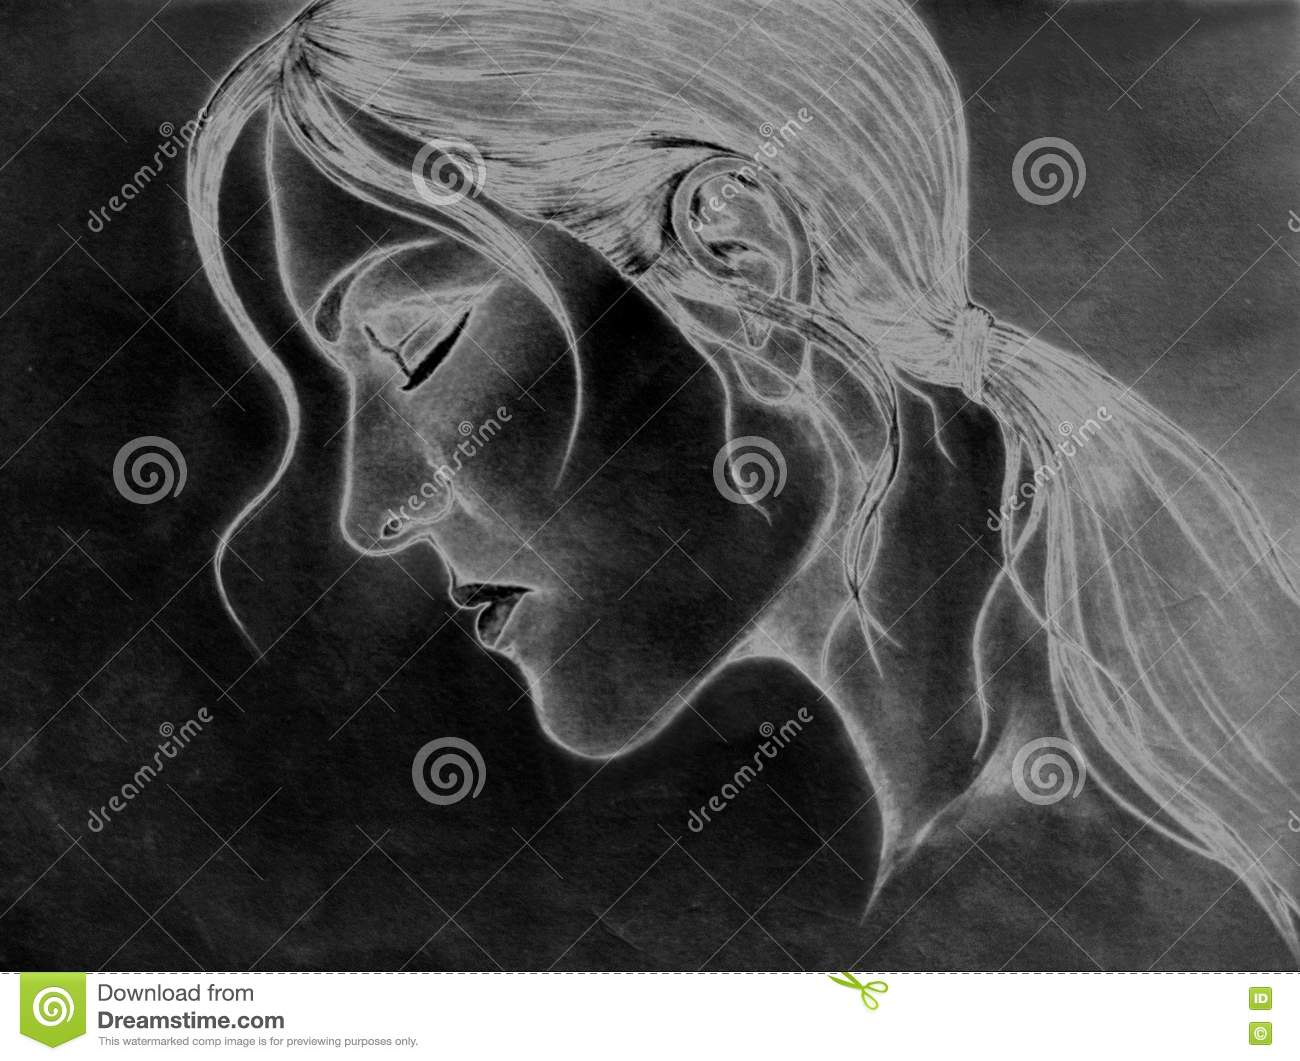 This is not a real person negative version of pencil drawing of a face of a cute lady with shading i am the author of this one